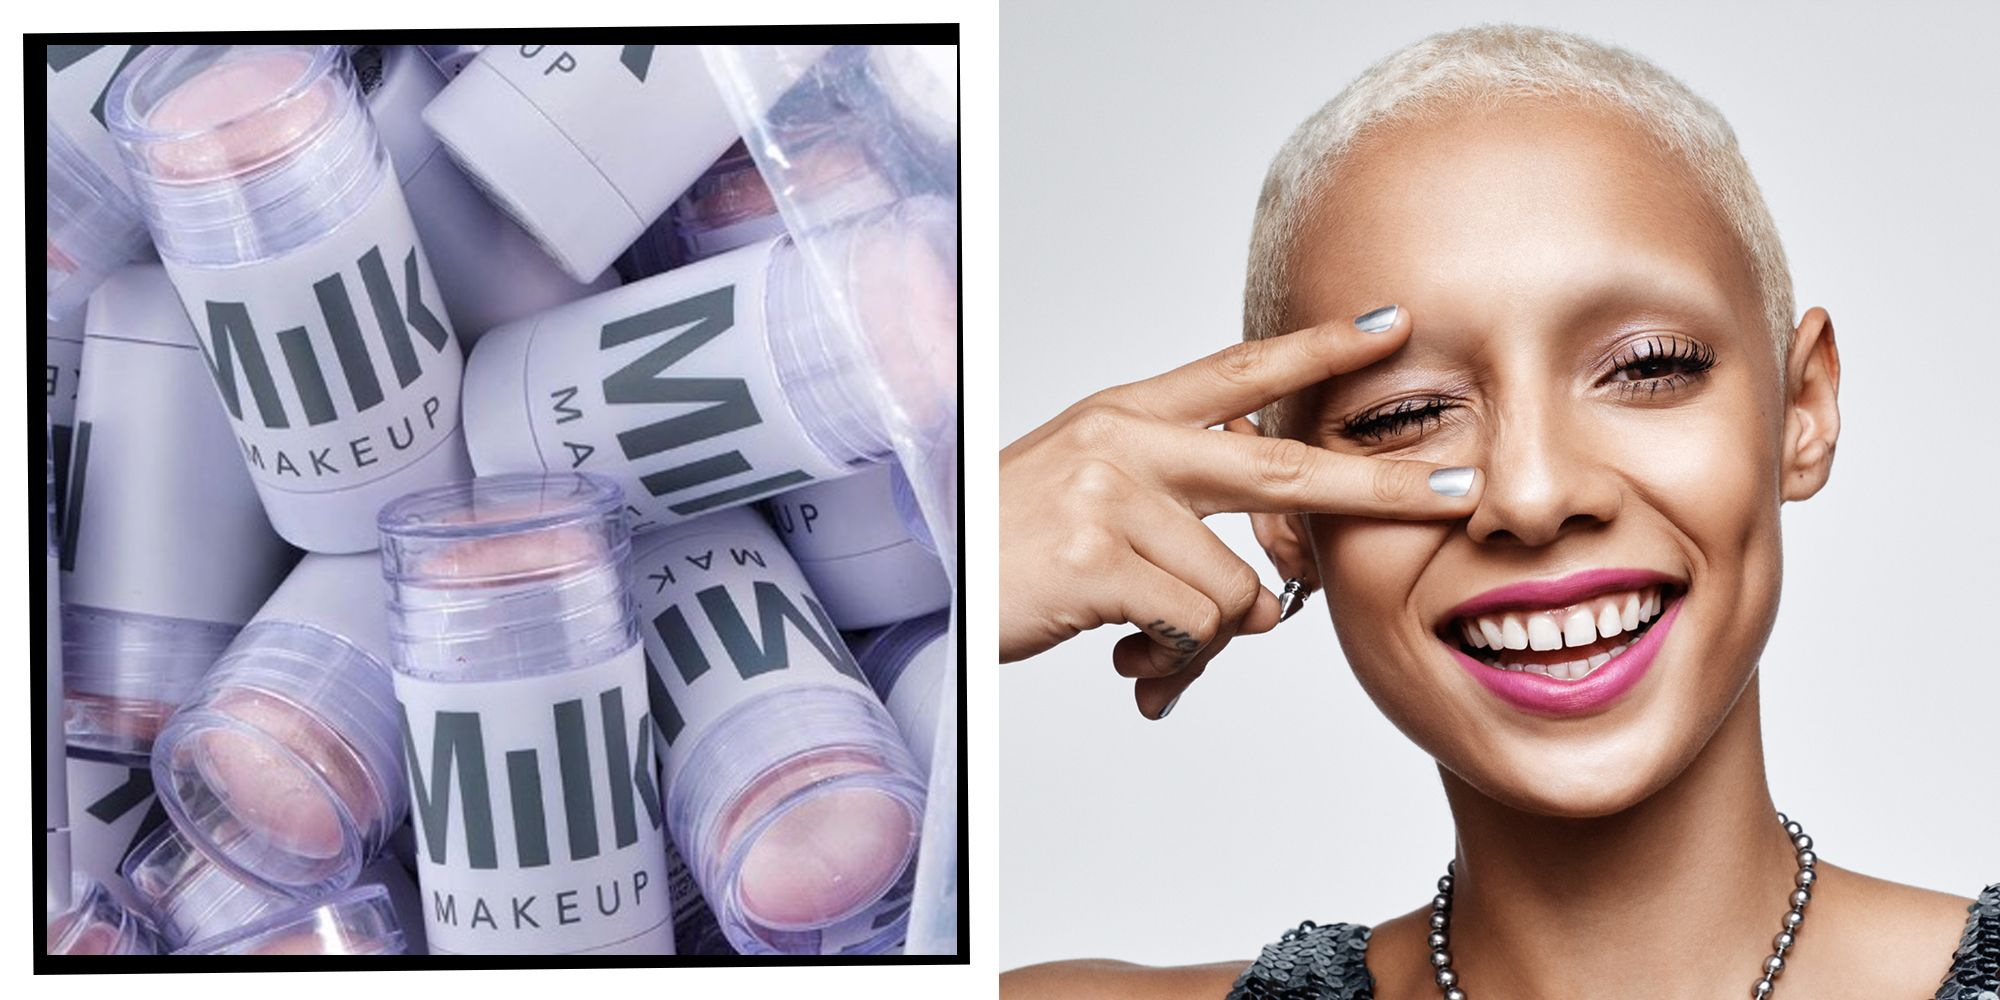 Milk Makeup Just Launched In The Uk And